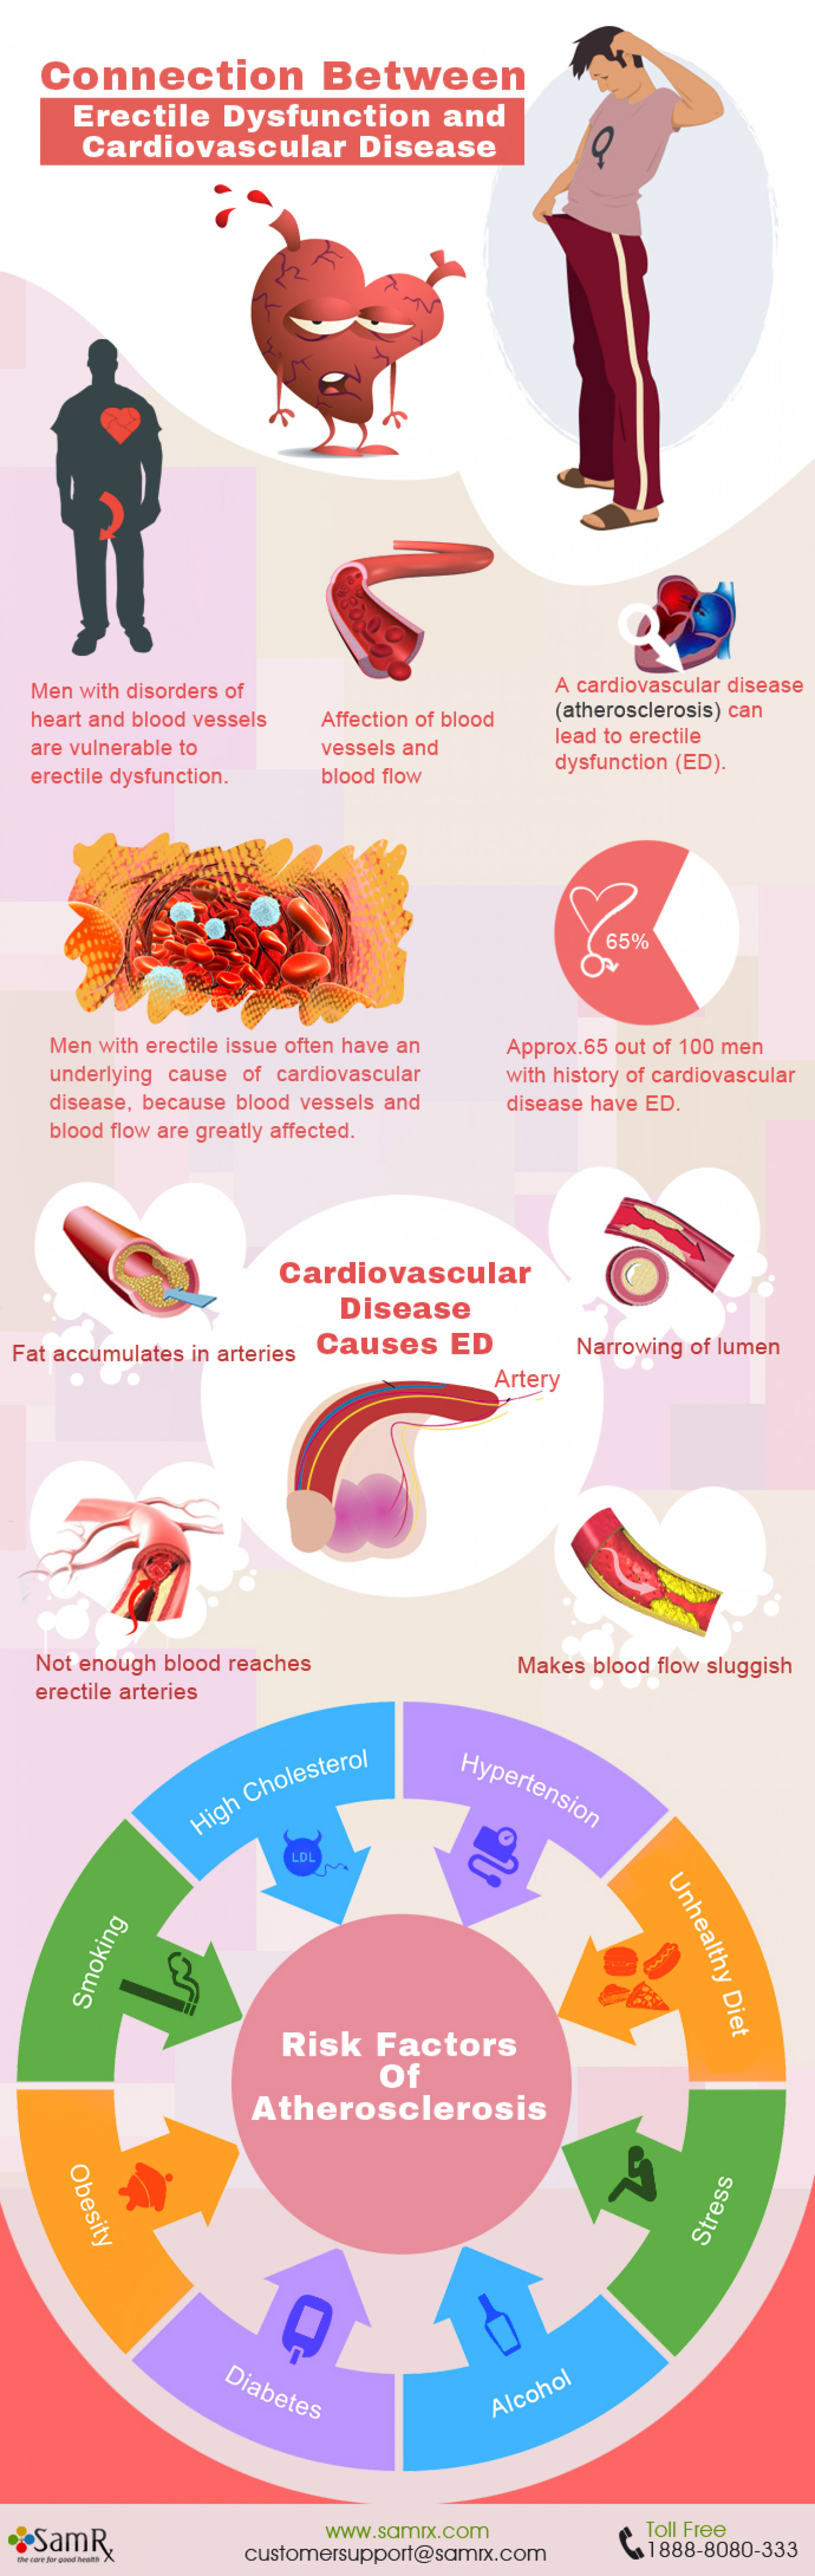 Infographic: Connection between Erectile Dysfunction and Cardiovascular Disease Infographic